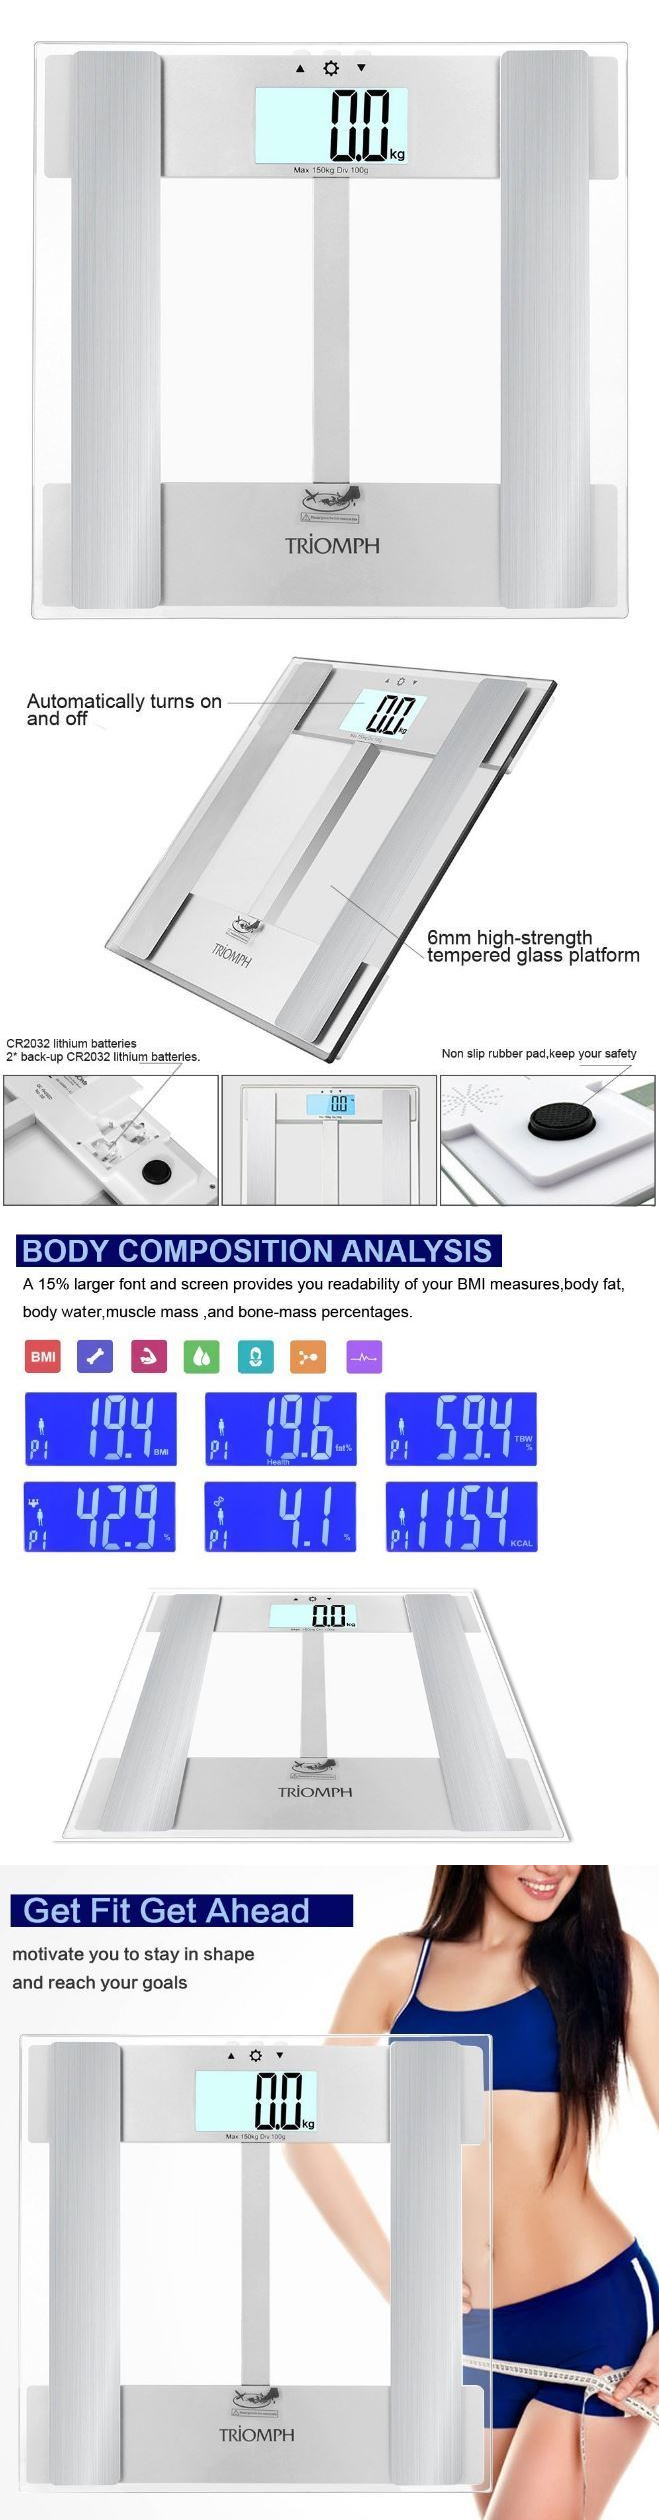 Bathroom scale body fat - Scales 108298 Weight Loss Digital Bathroom Scale Body Fat Bioelectrical Impedance Analysis New